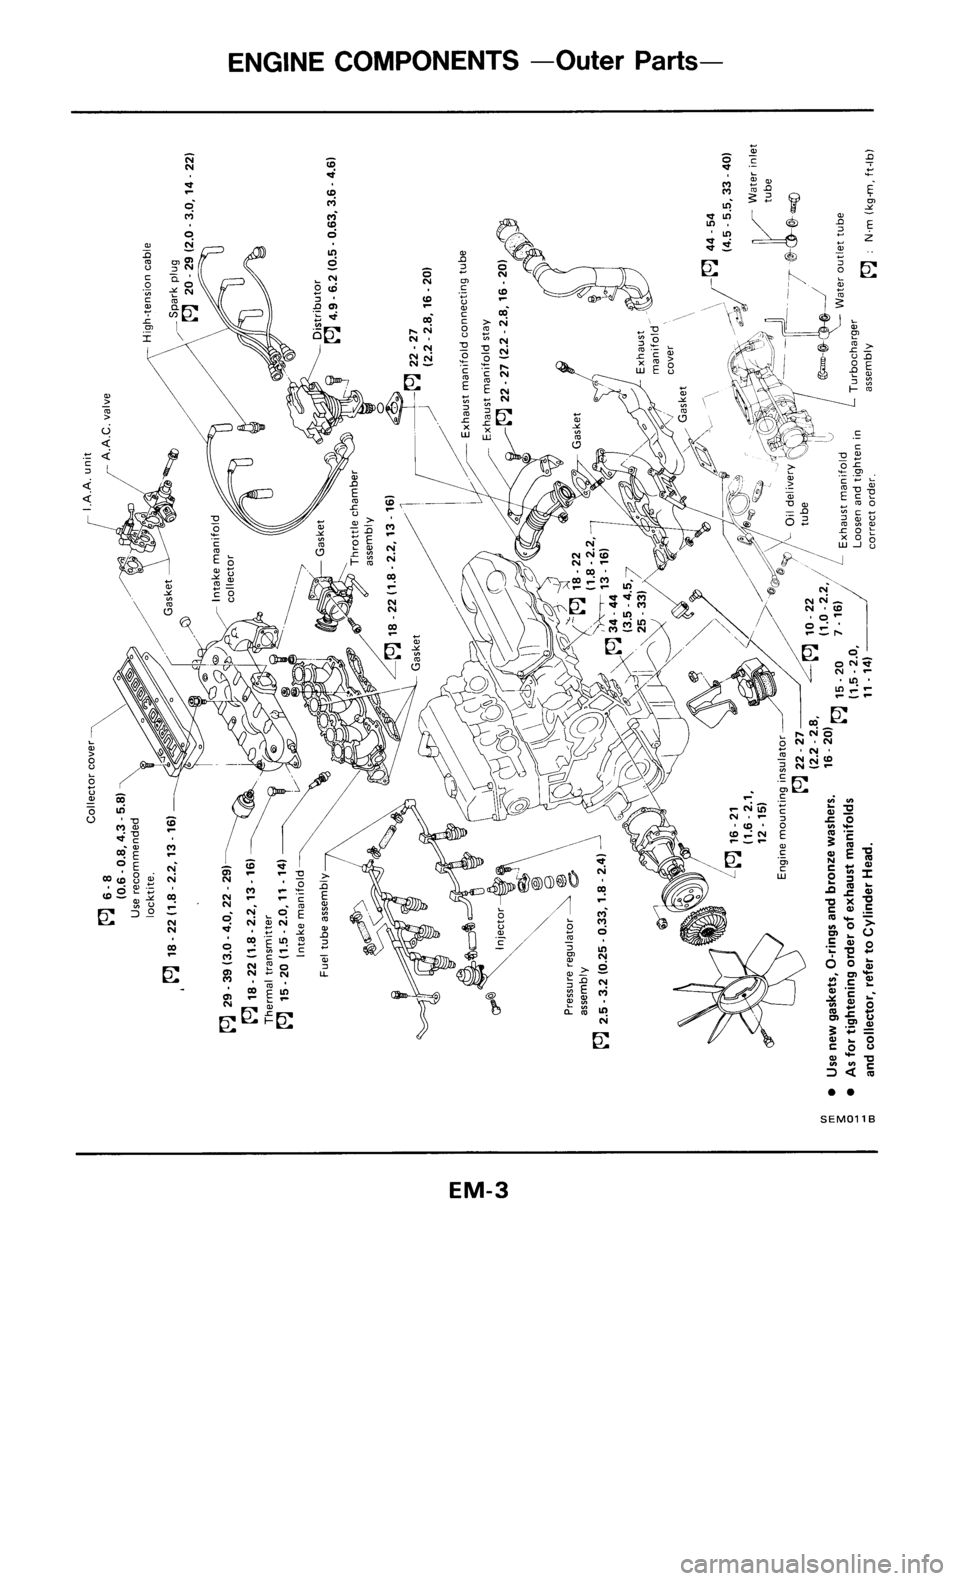 NISSAN 300ZX 1984 Z31 Engine Mechanical Workshop Manual, Page 3